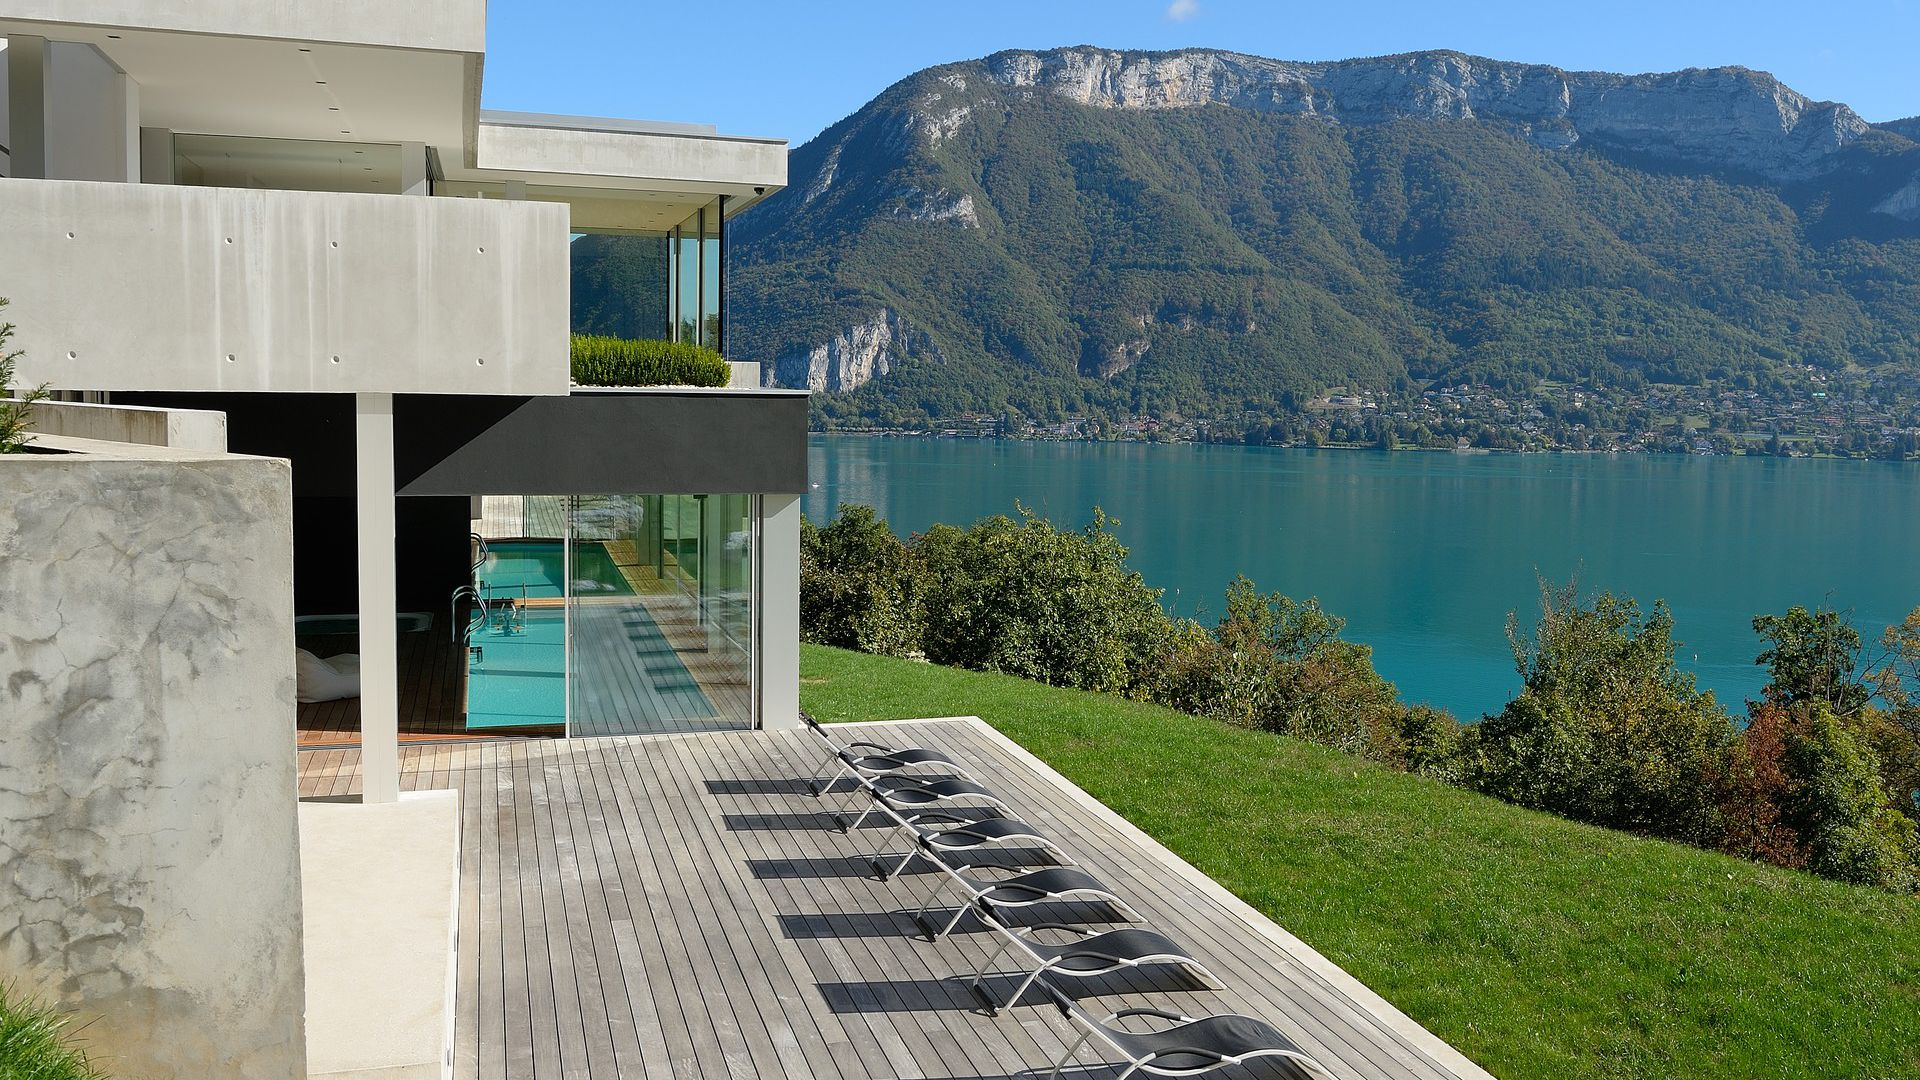 Agence Immobiliere De Prestige A Annecy Immobilier De Luxe Annecy De Meyer Immobilier